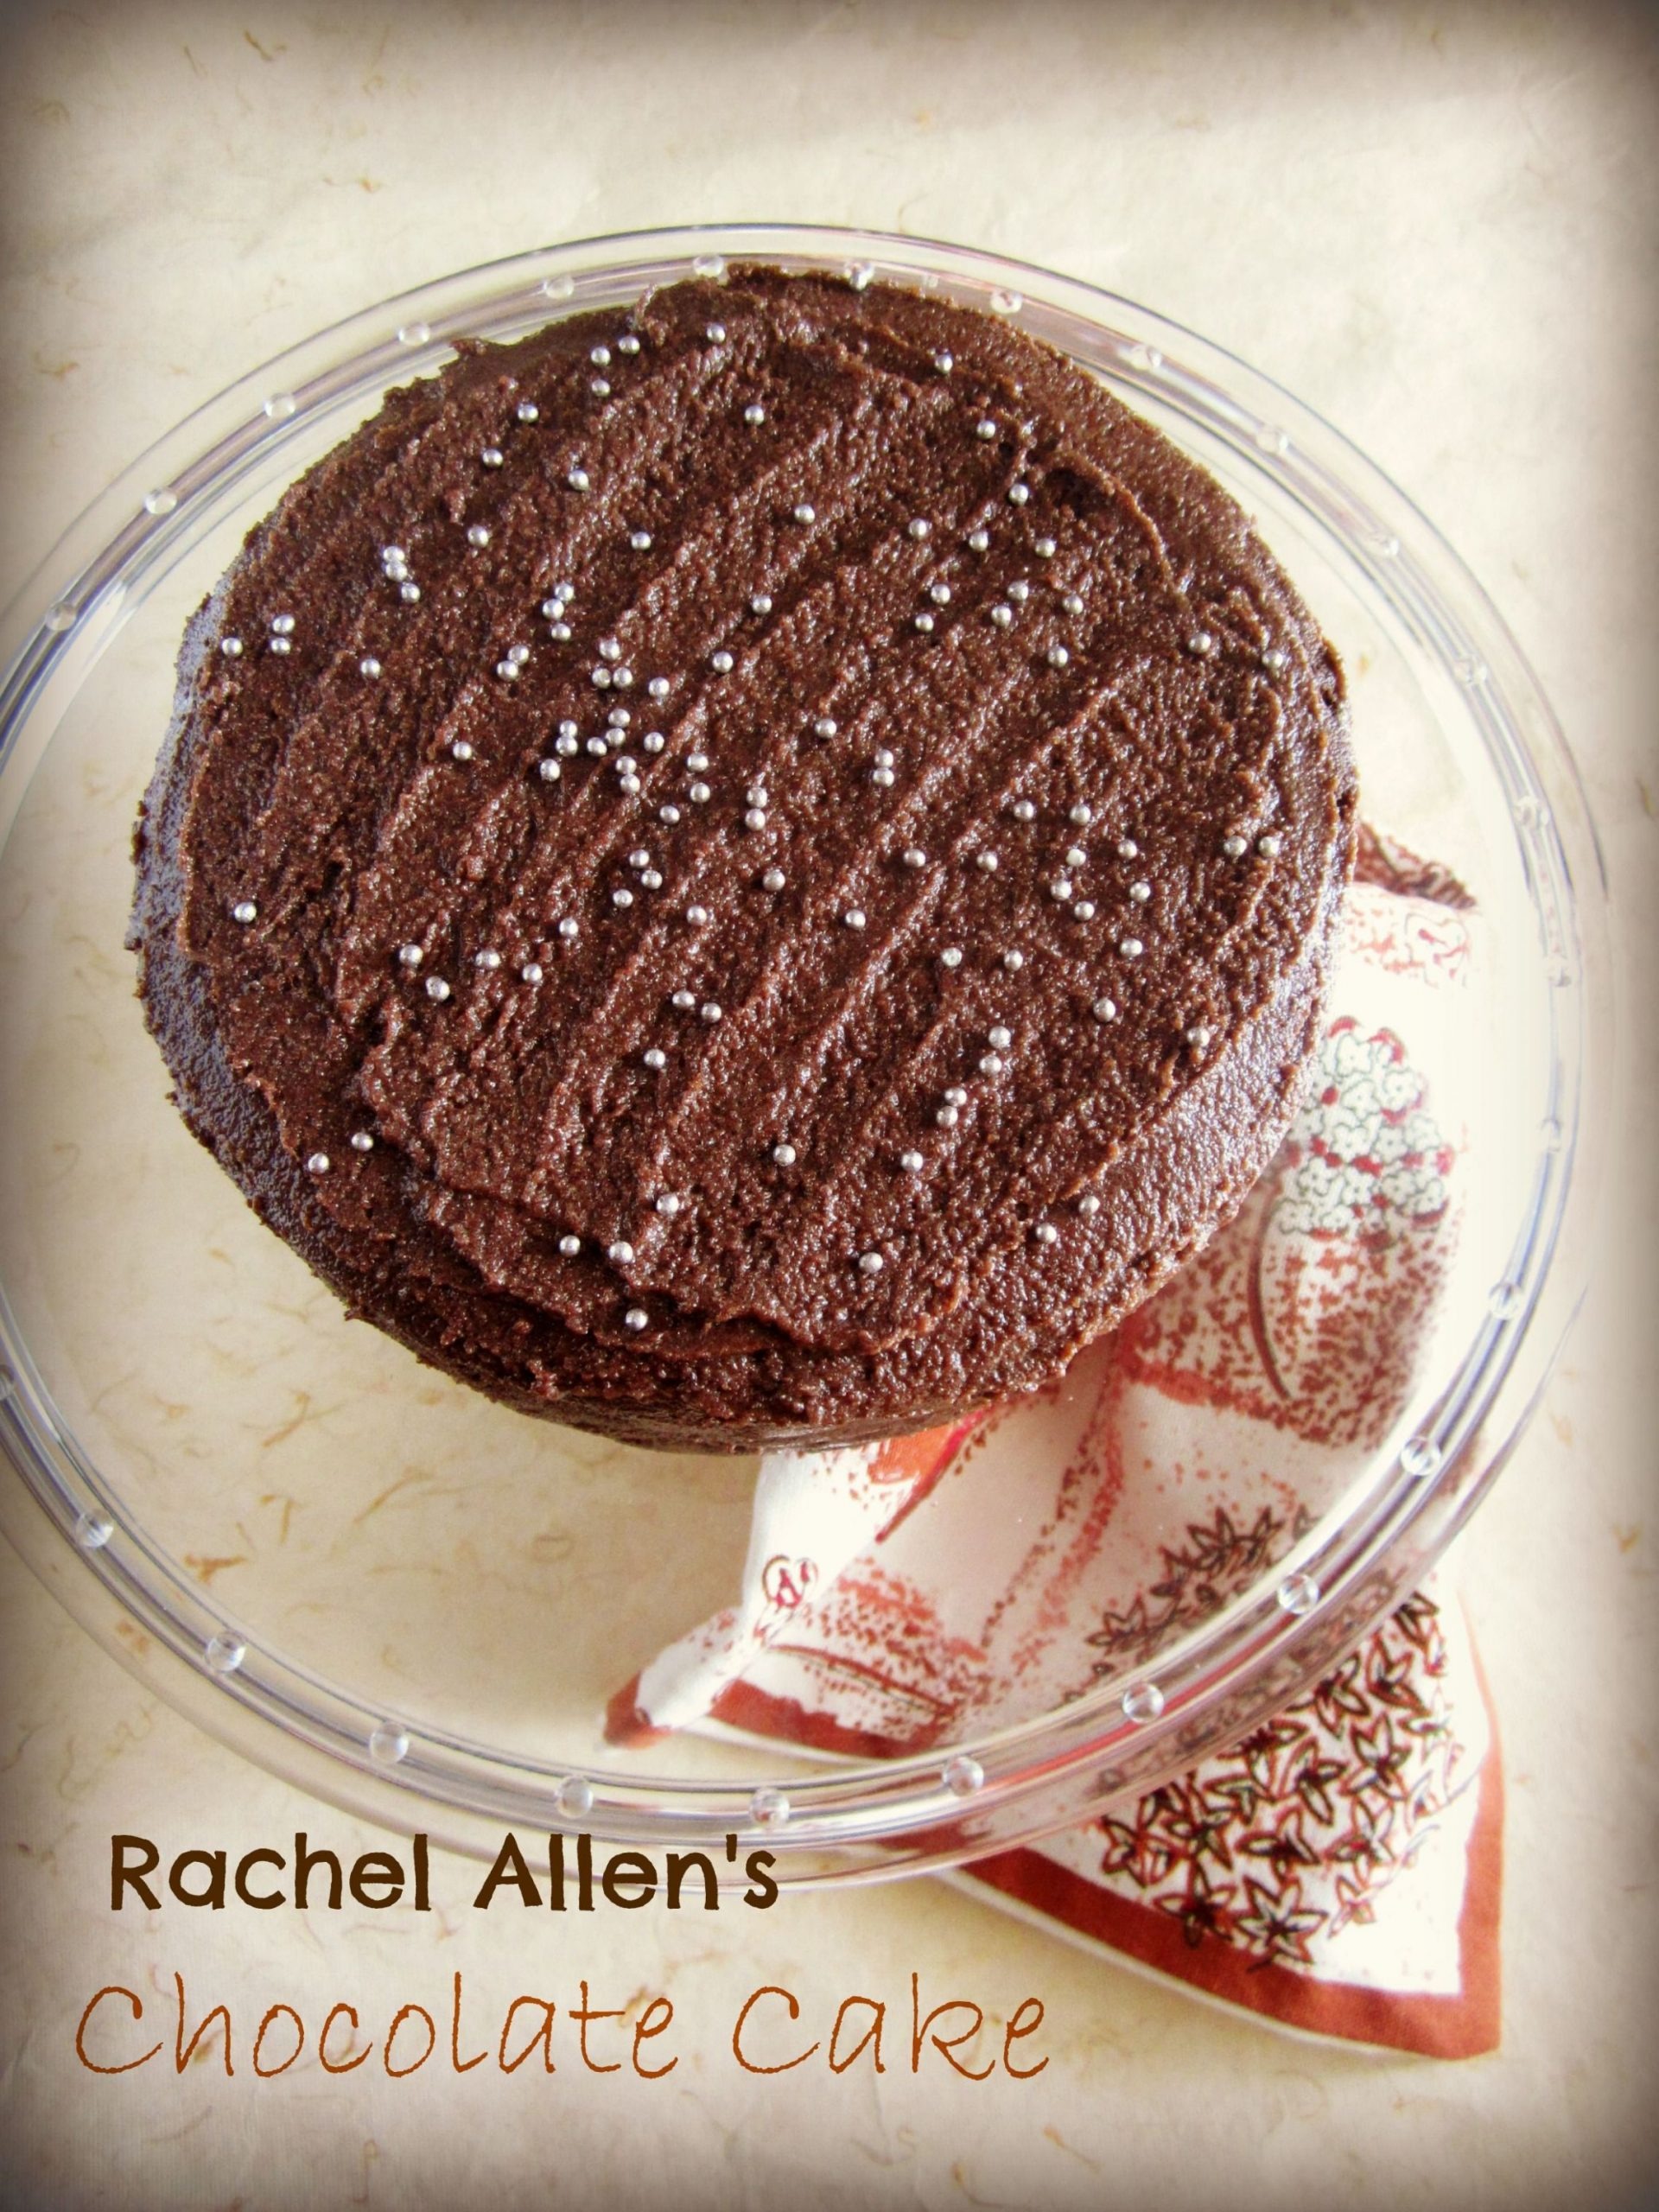 Rachel Allen's Chocolate Cake,a Product Review & Giveaway! | Yummy ...